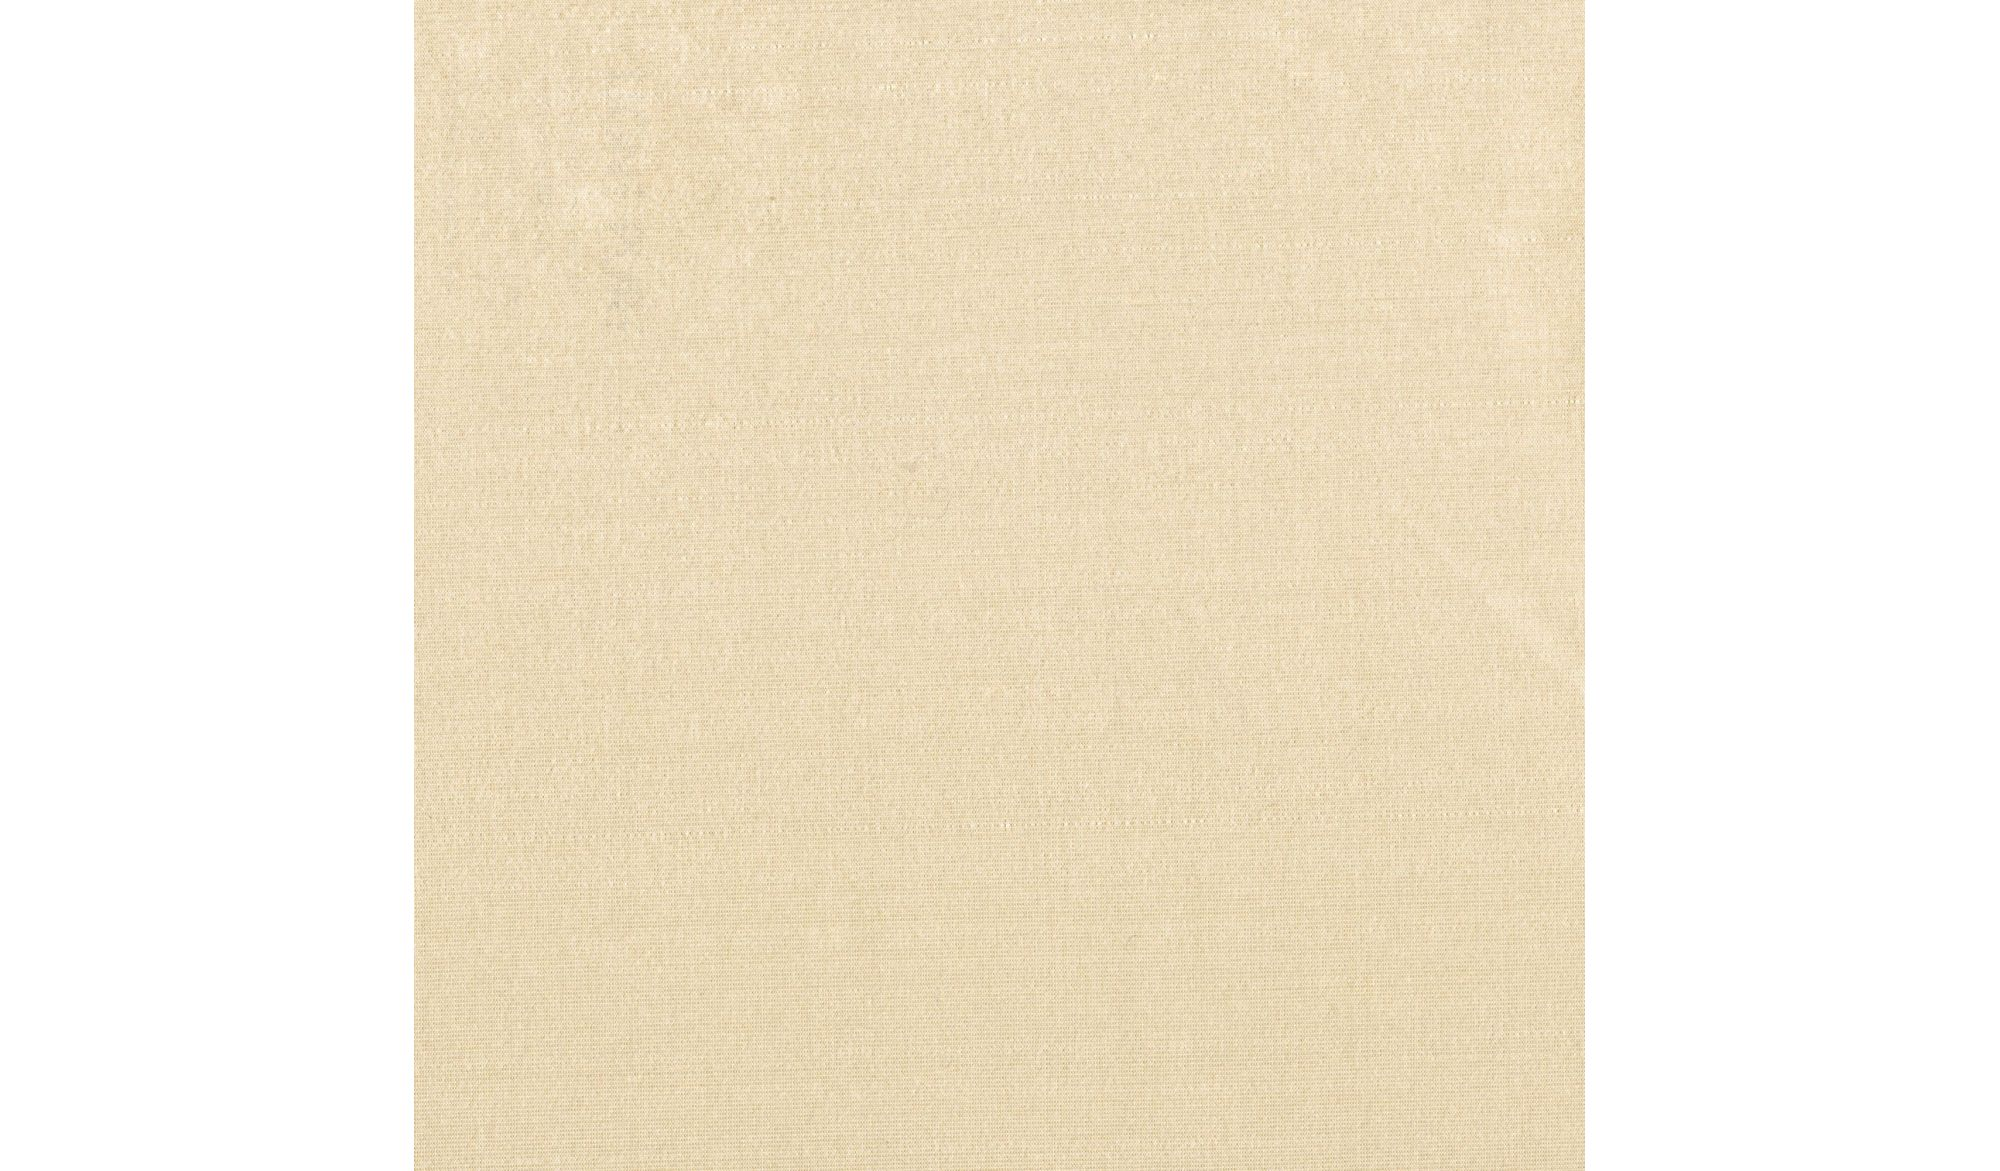 YAMIR Beige 1506 - Fabric alt_tkaniny_kolor_beige 1506 decorative Plain - Colour